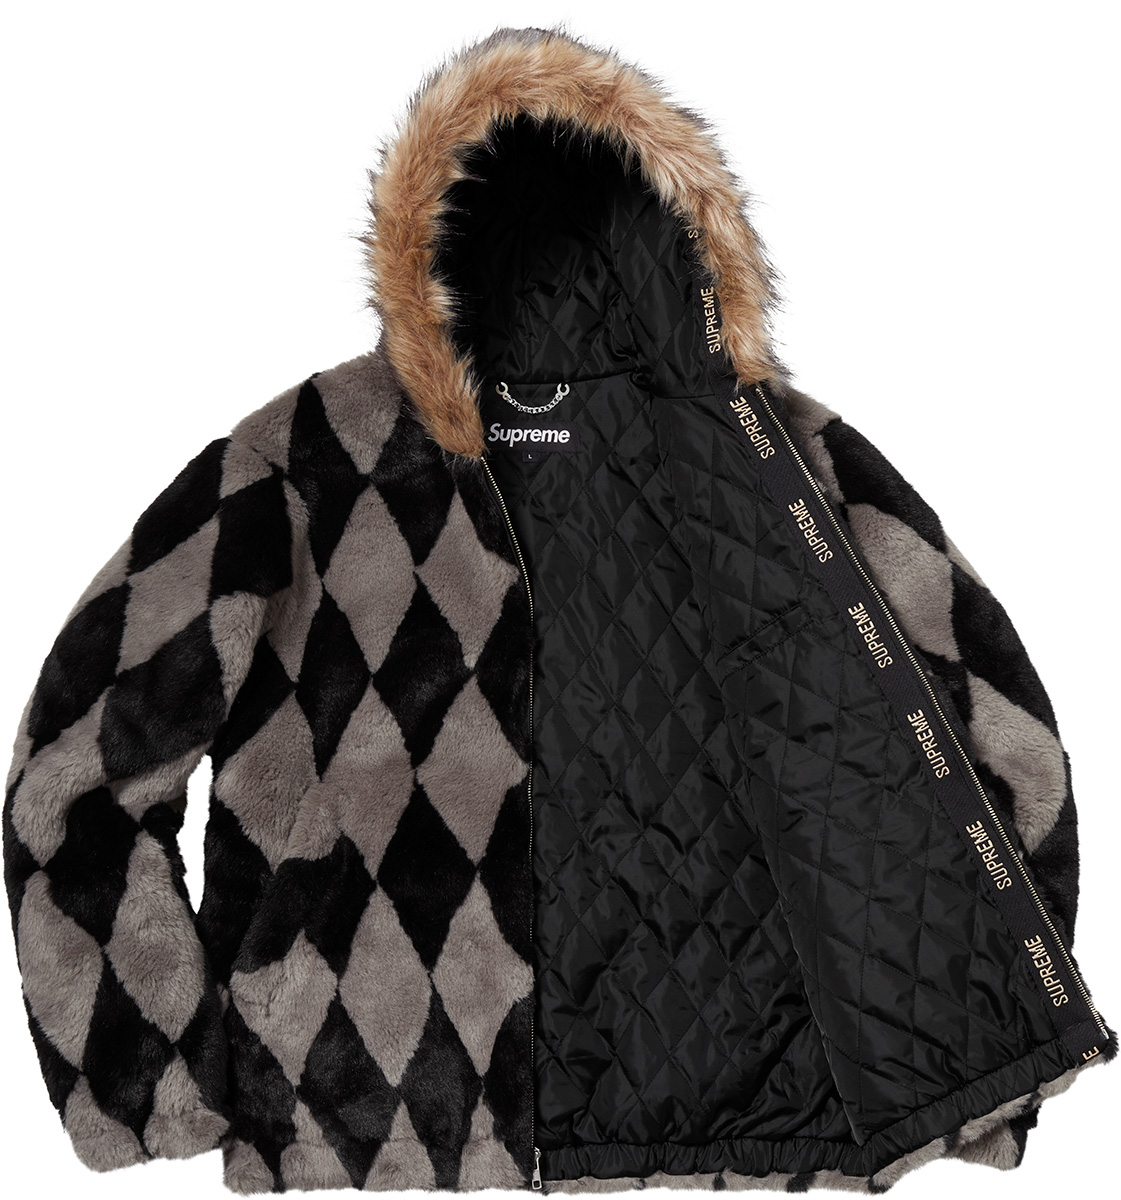 supreme-18aw-fall-winter-diamond-faux-fur-jacket